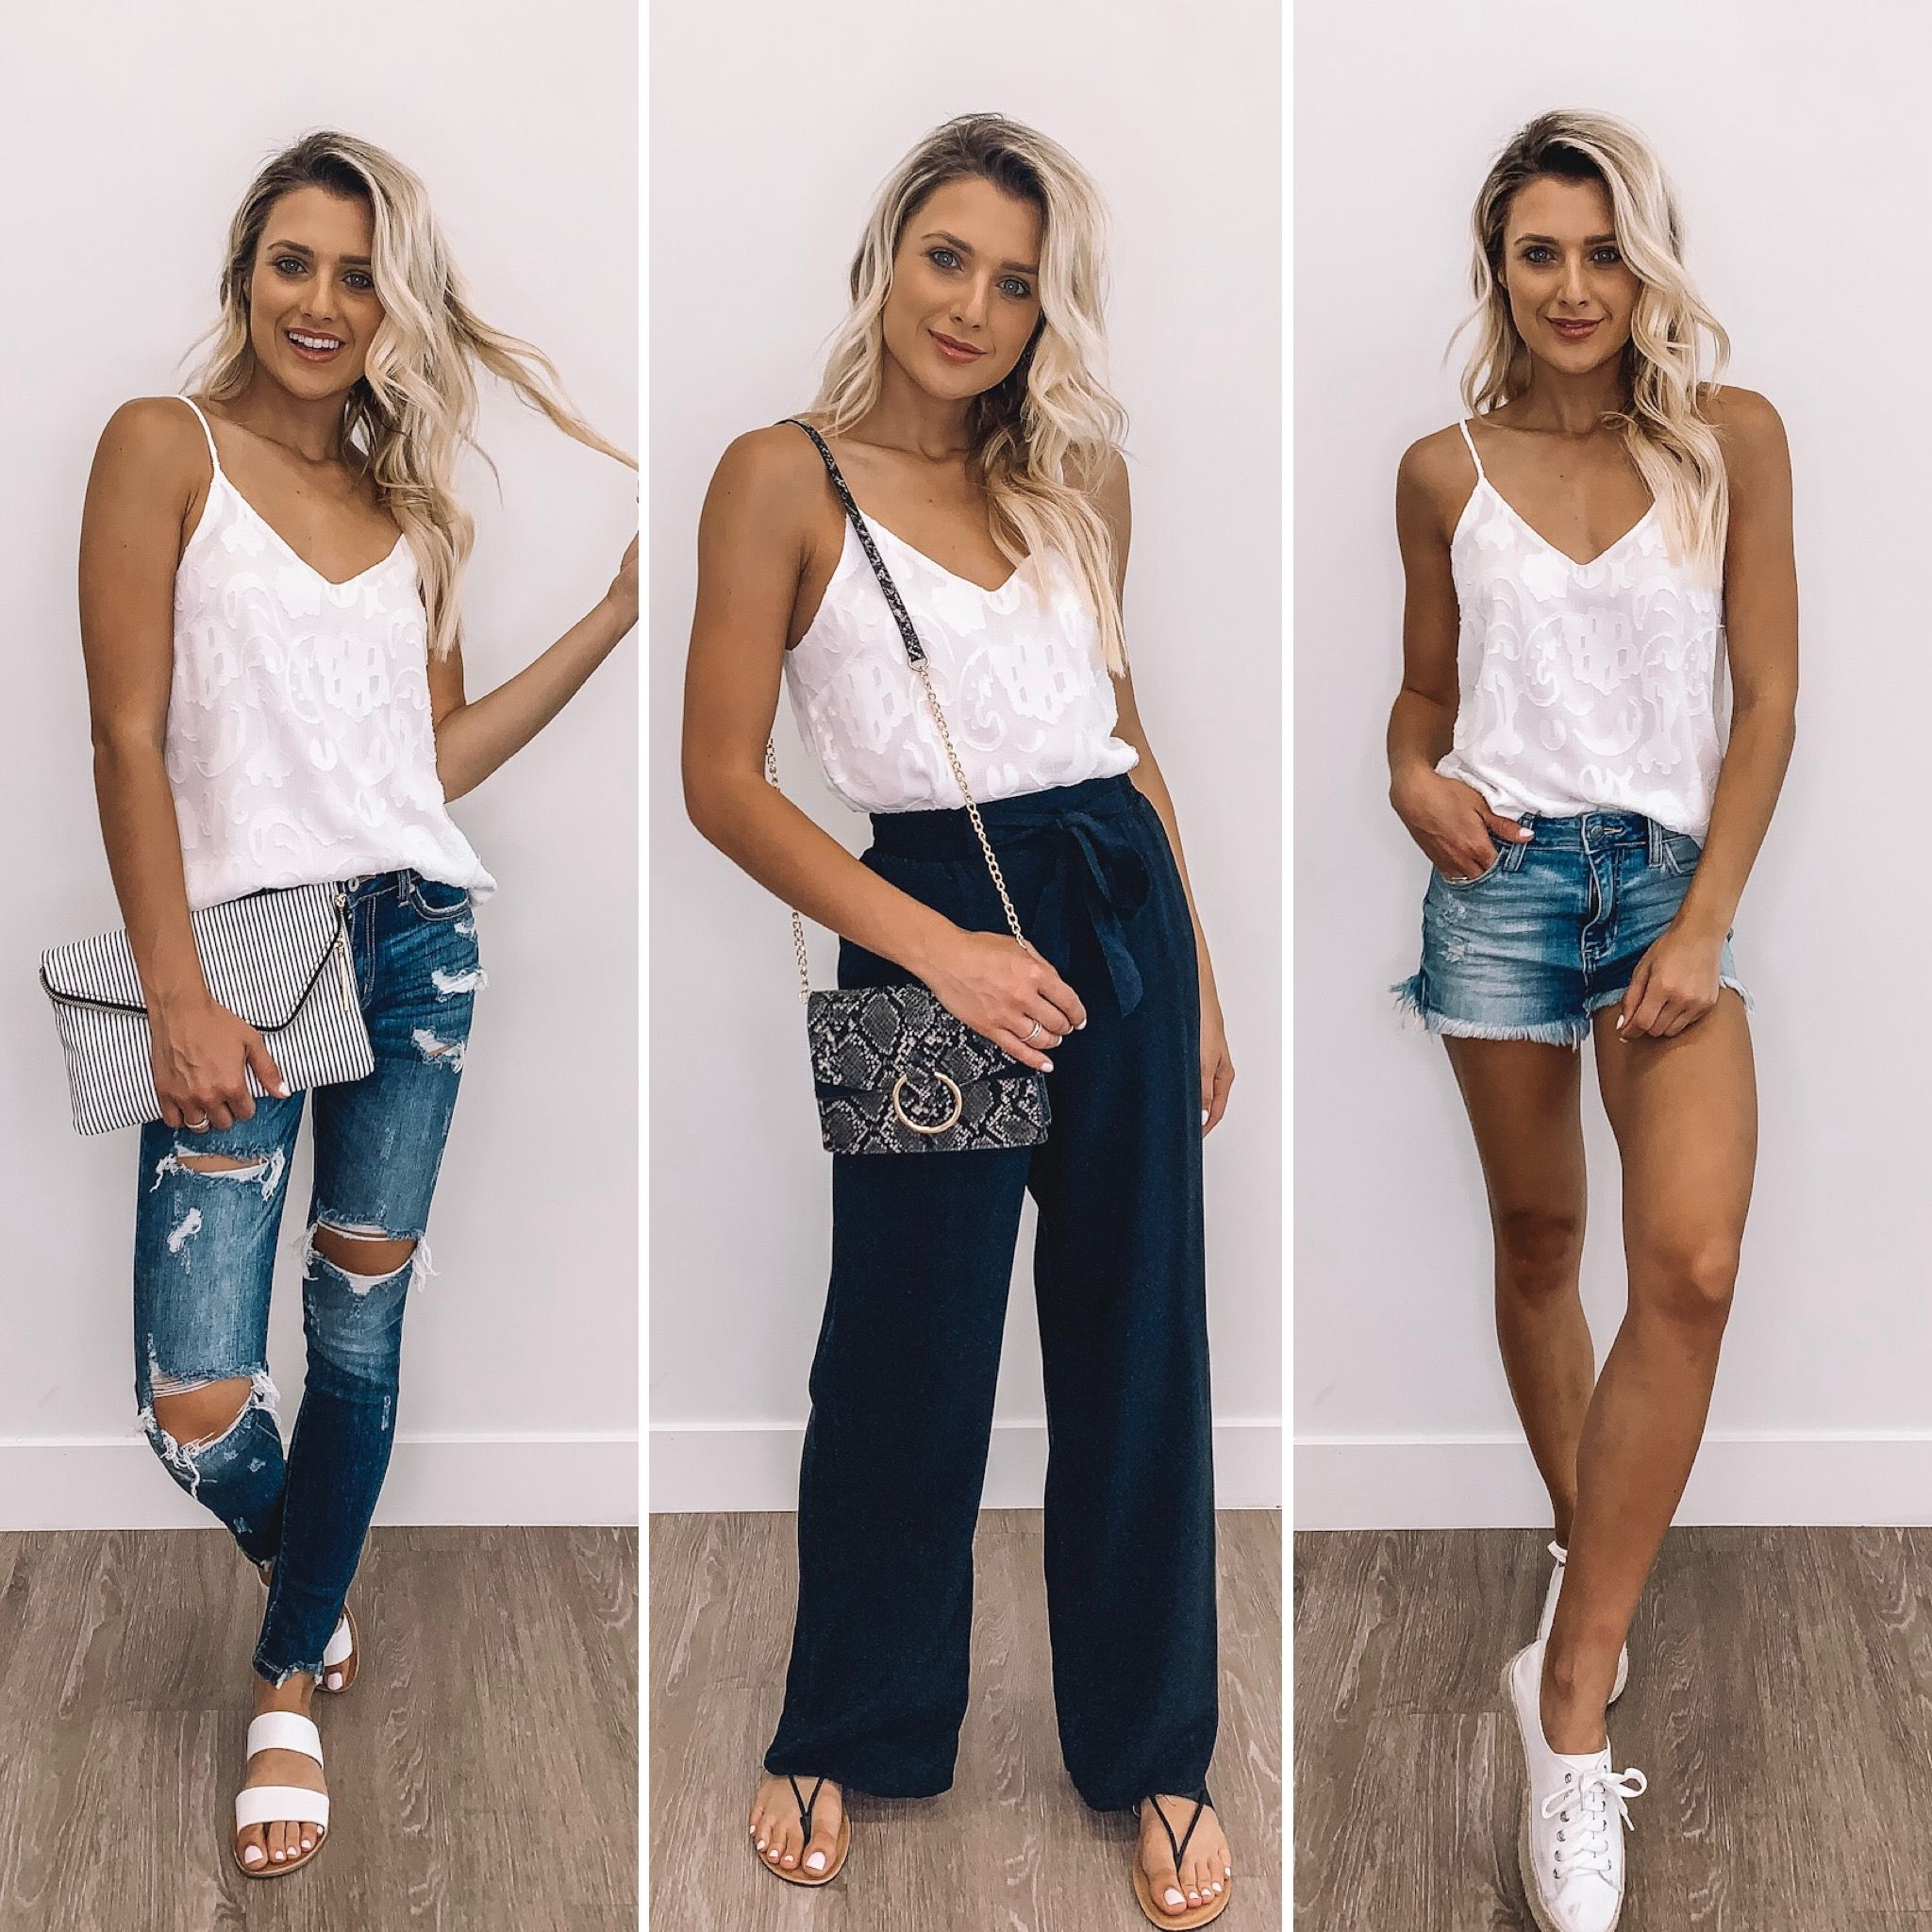 White Tank Top 7 Ways  Business casual outfits, Clothes for women